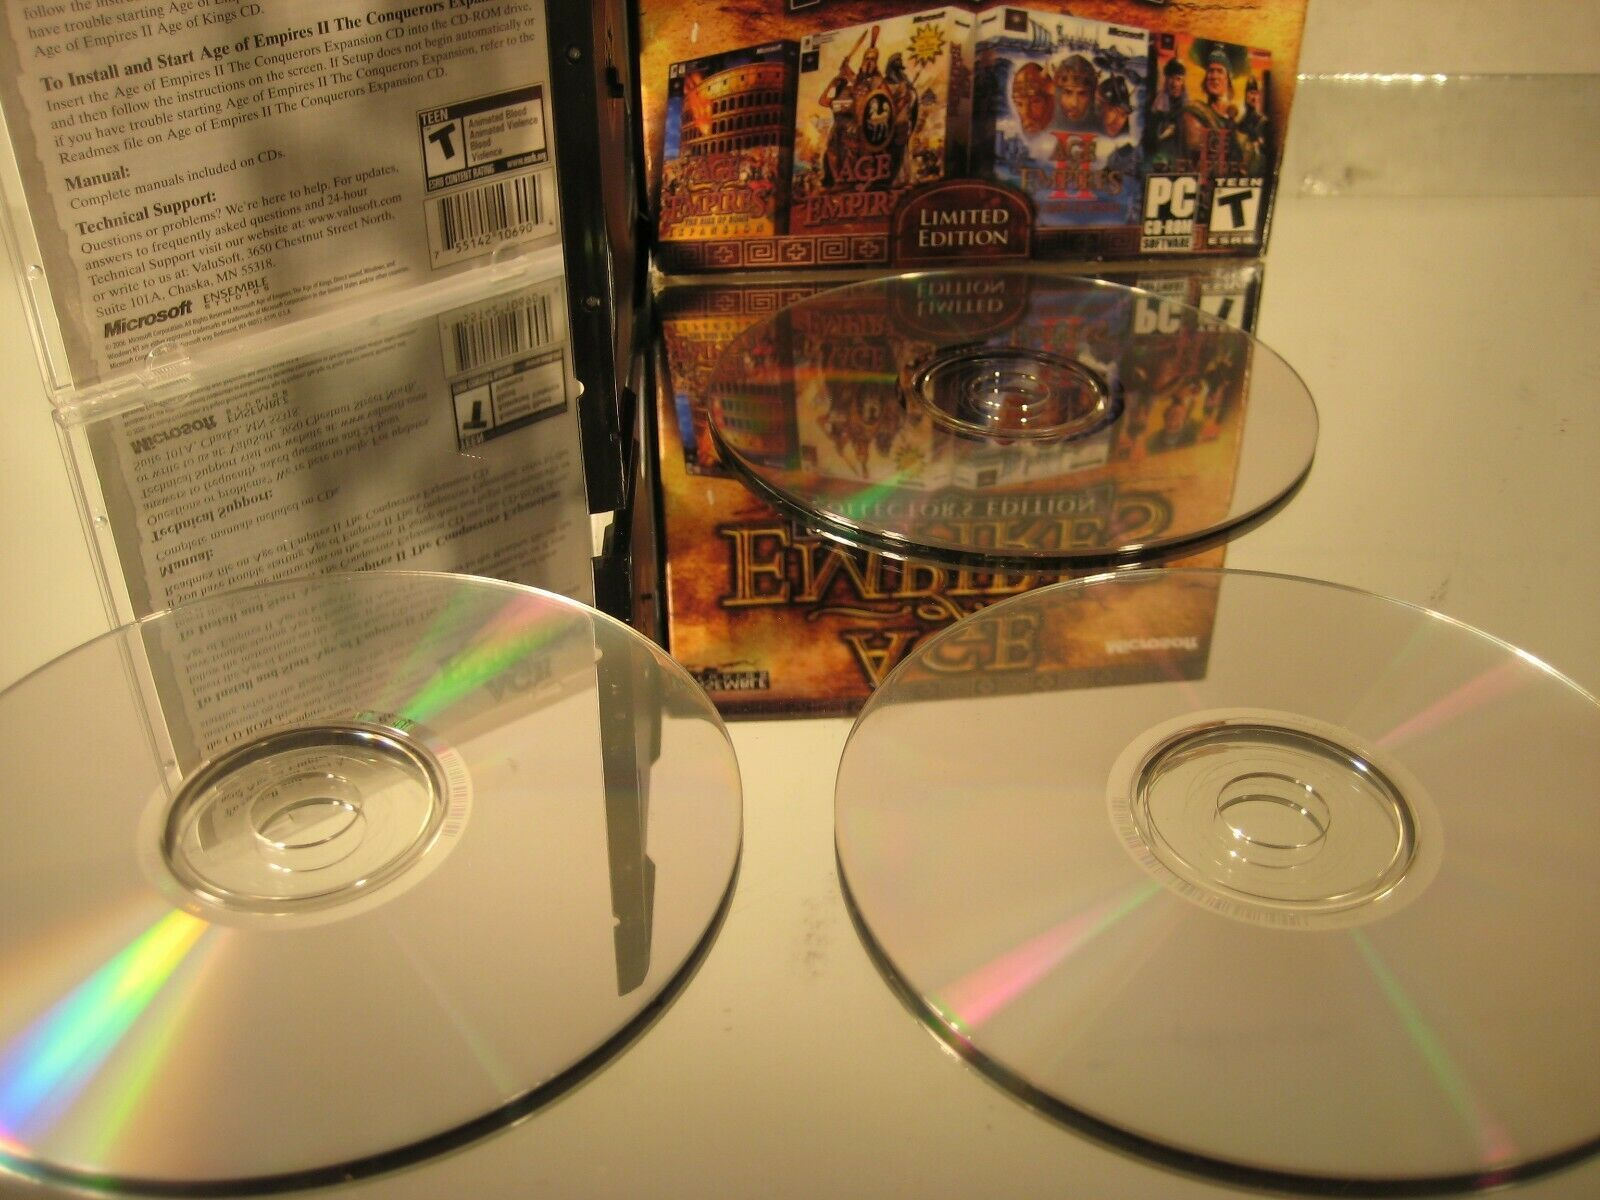 Age of Empires Collectors' Edition 2000 PC CDROM RTS Game image 5